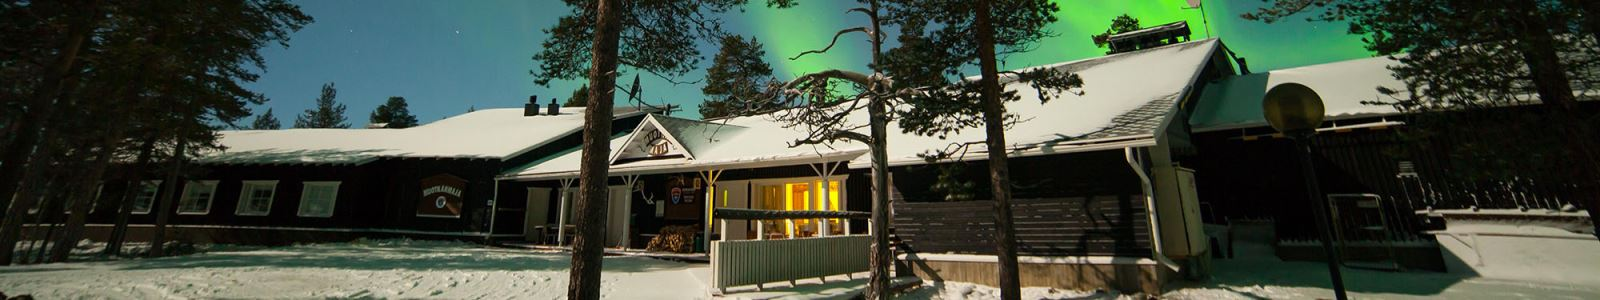 lapland-lodges-header